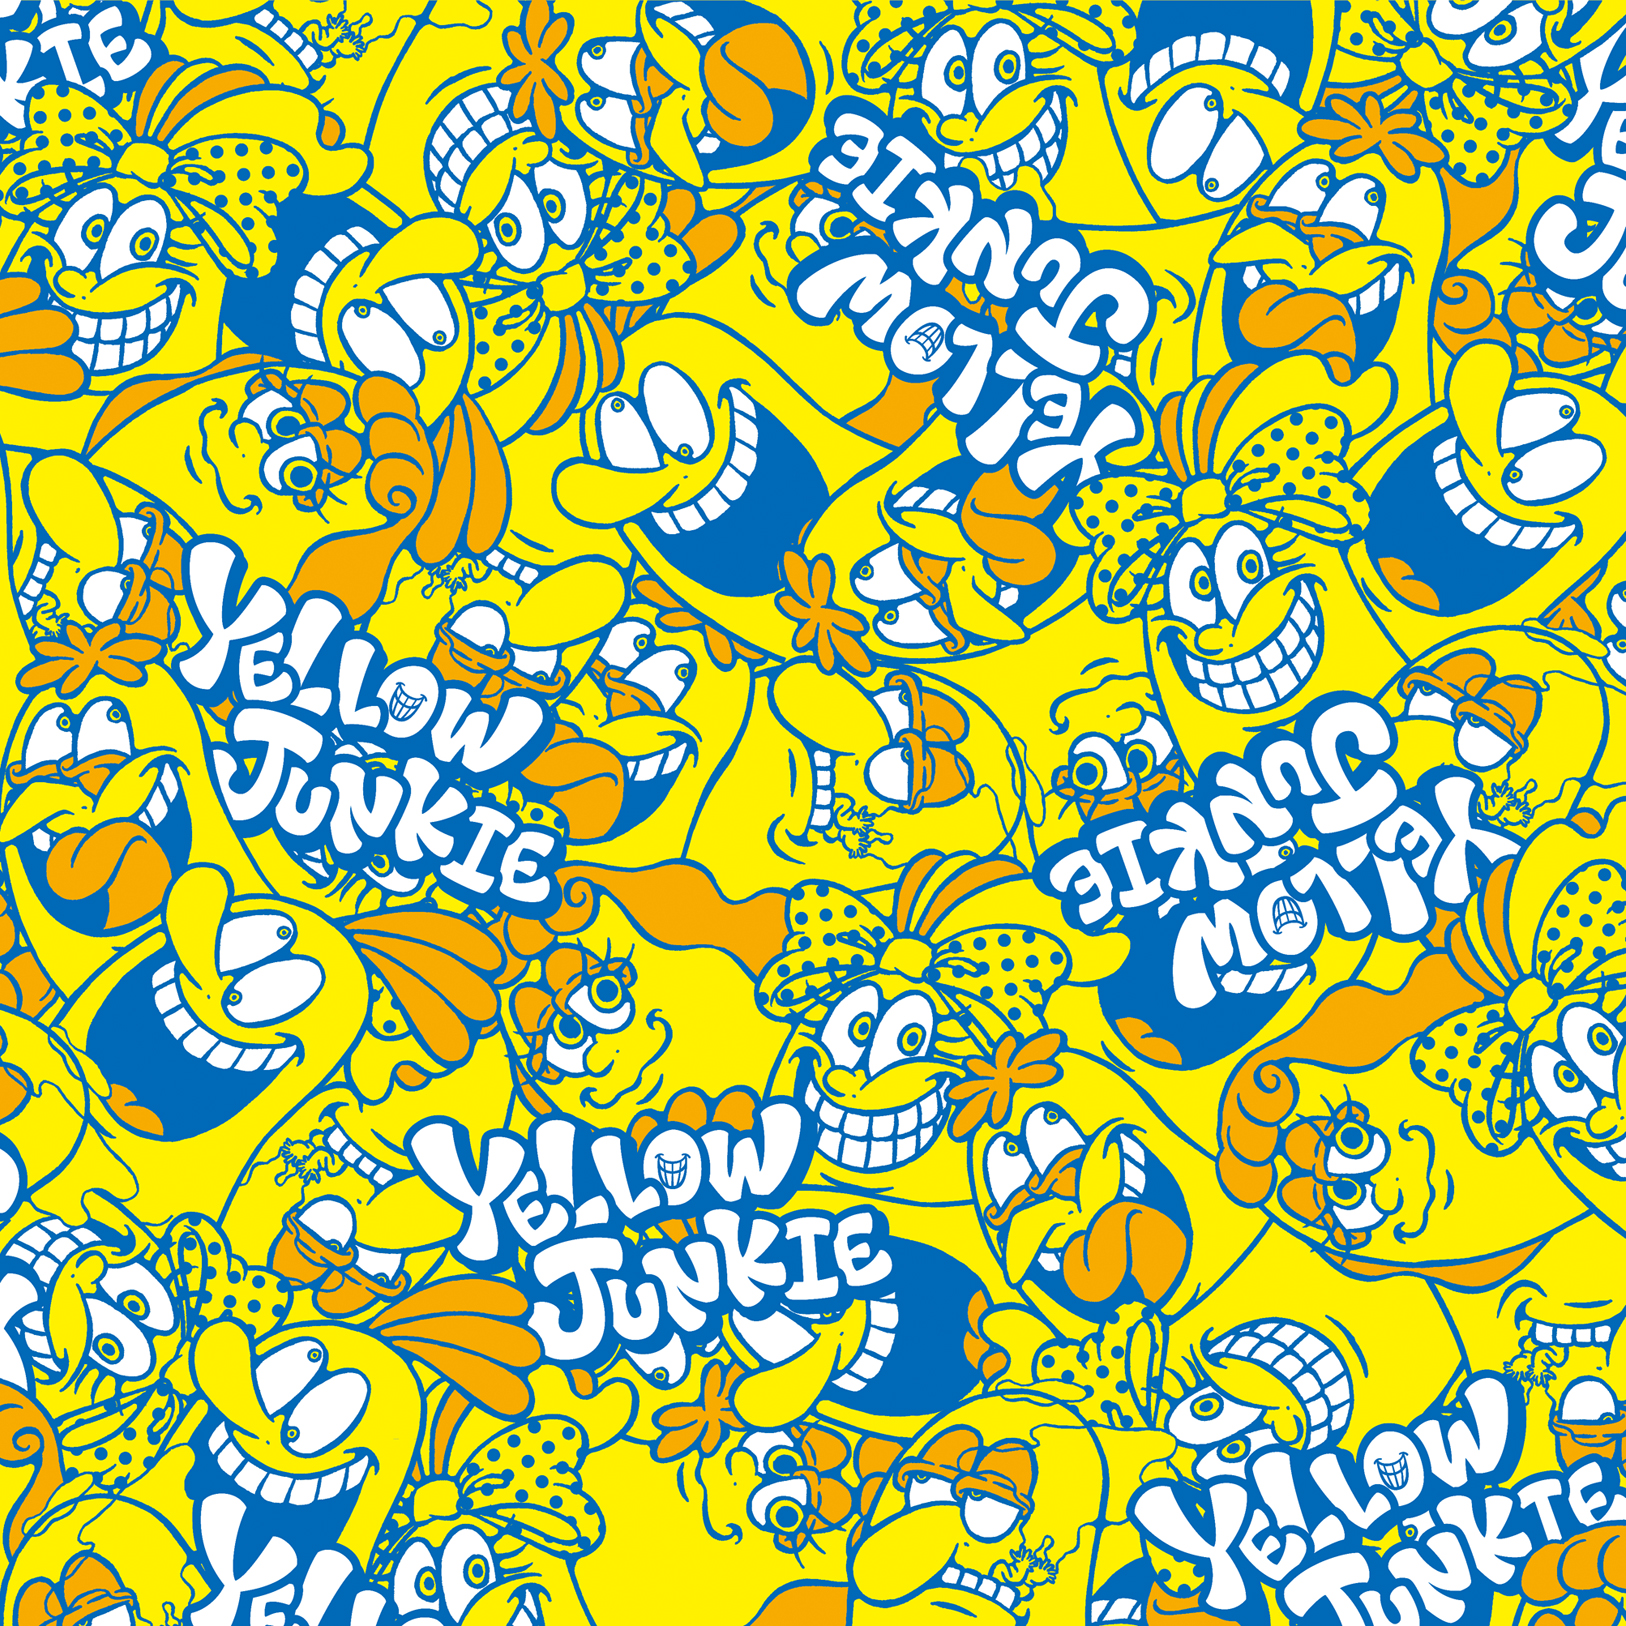 YELLOW JUNKIE総柄